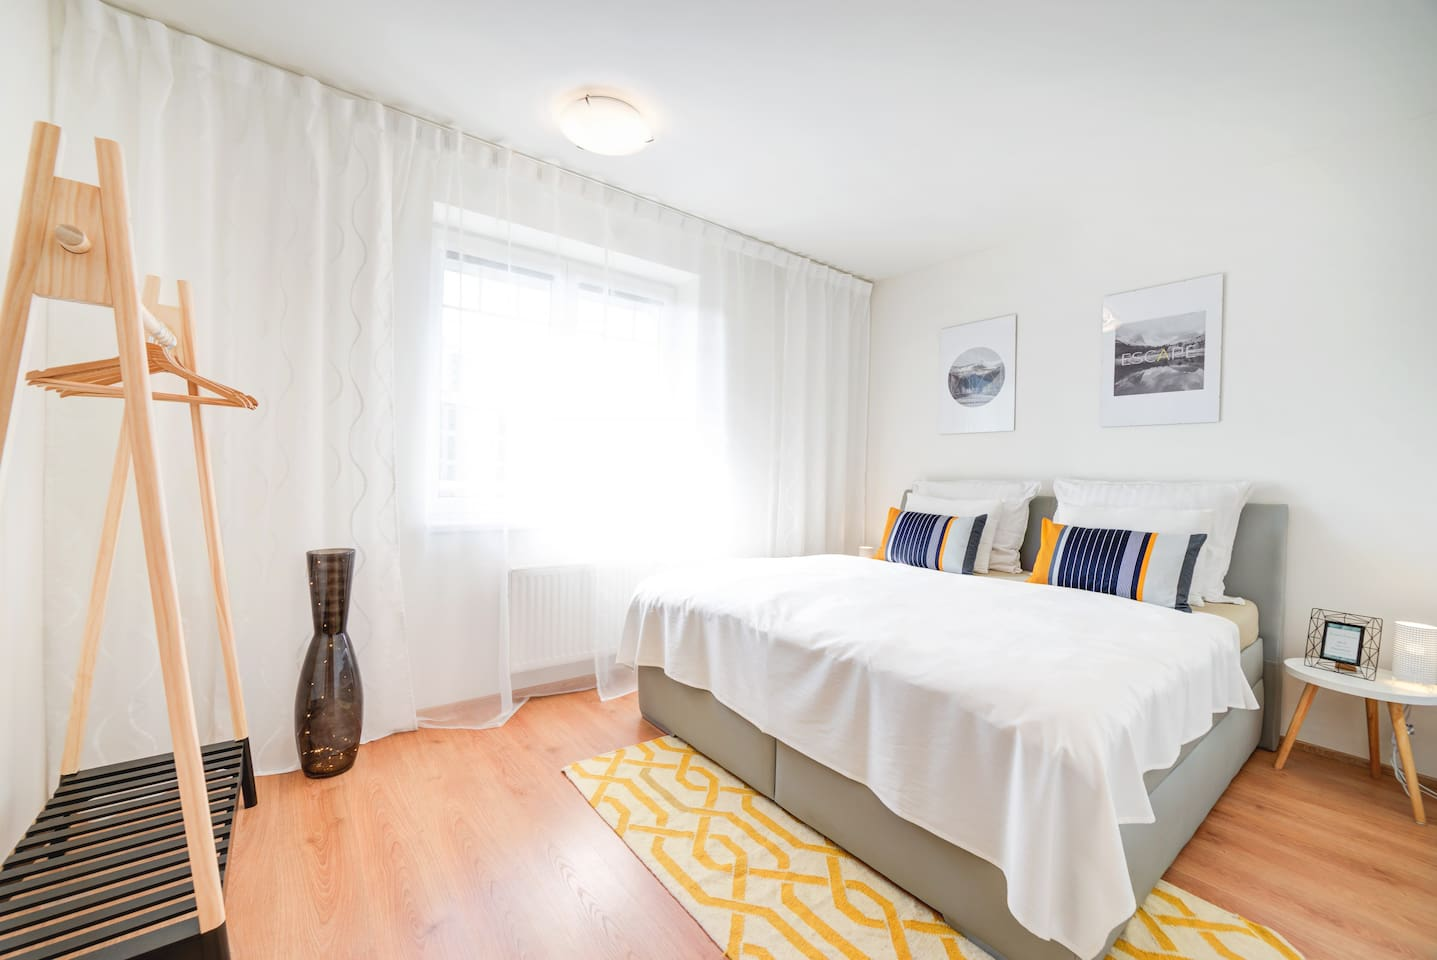 Relax on a large and comfortable bed after a wonderful day spent in Brno.